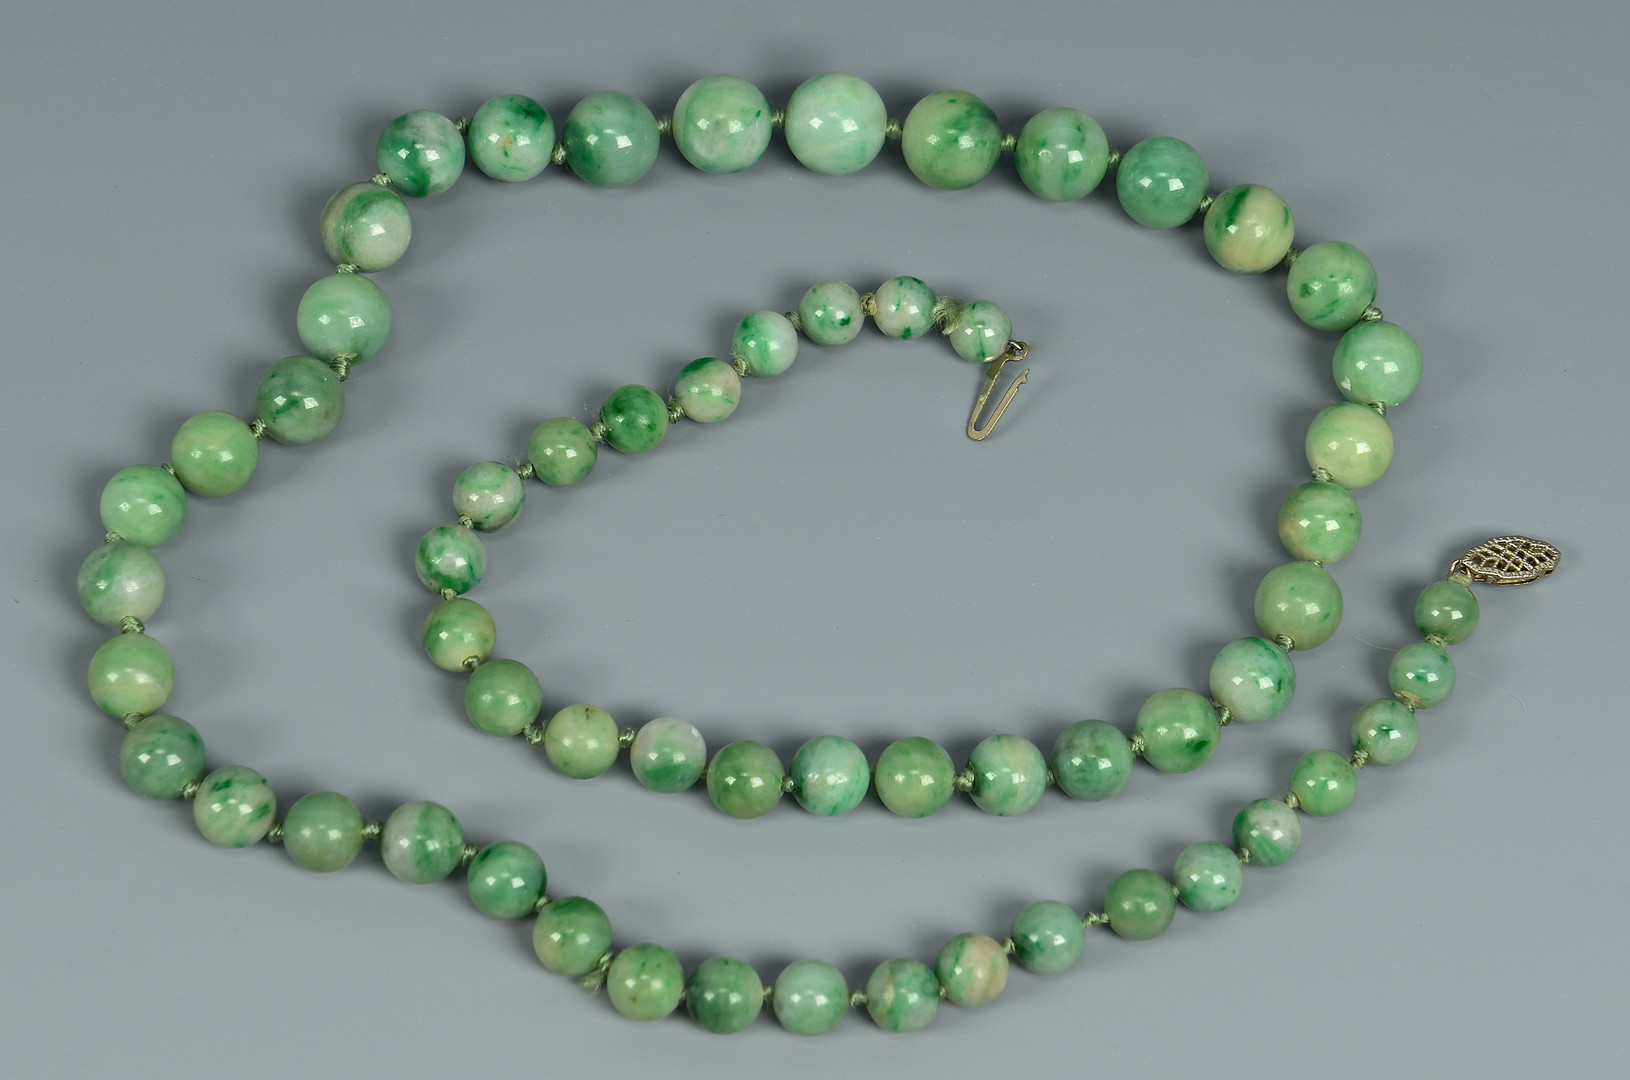 Lot 18: Grouping of Jade Jewelry, 4 items